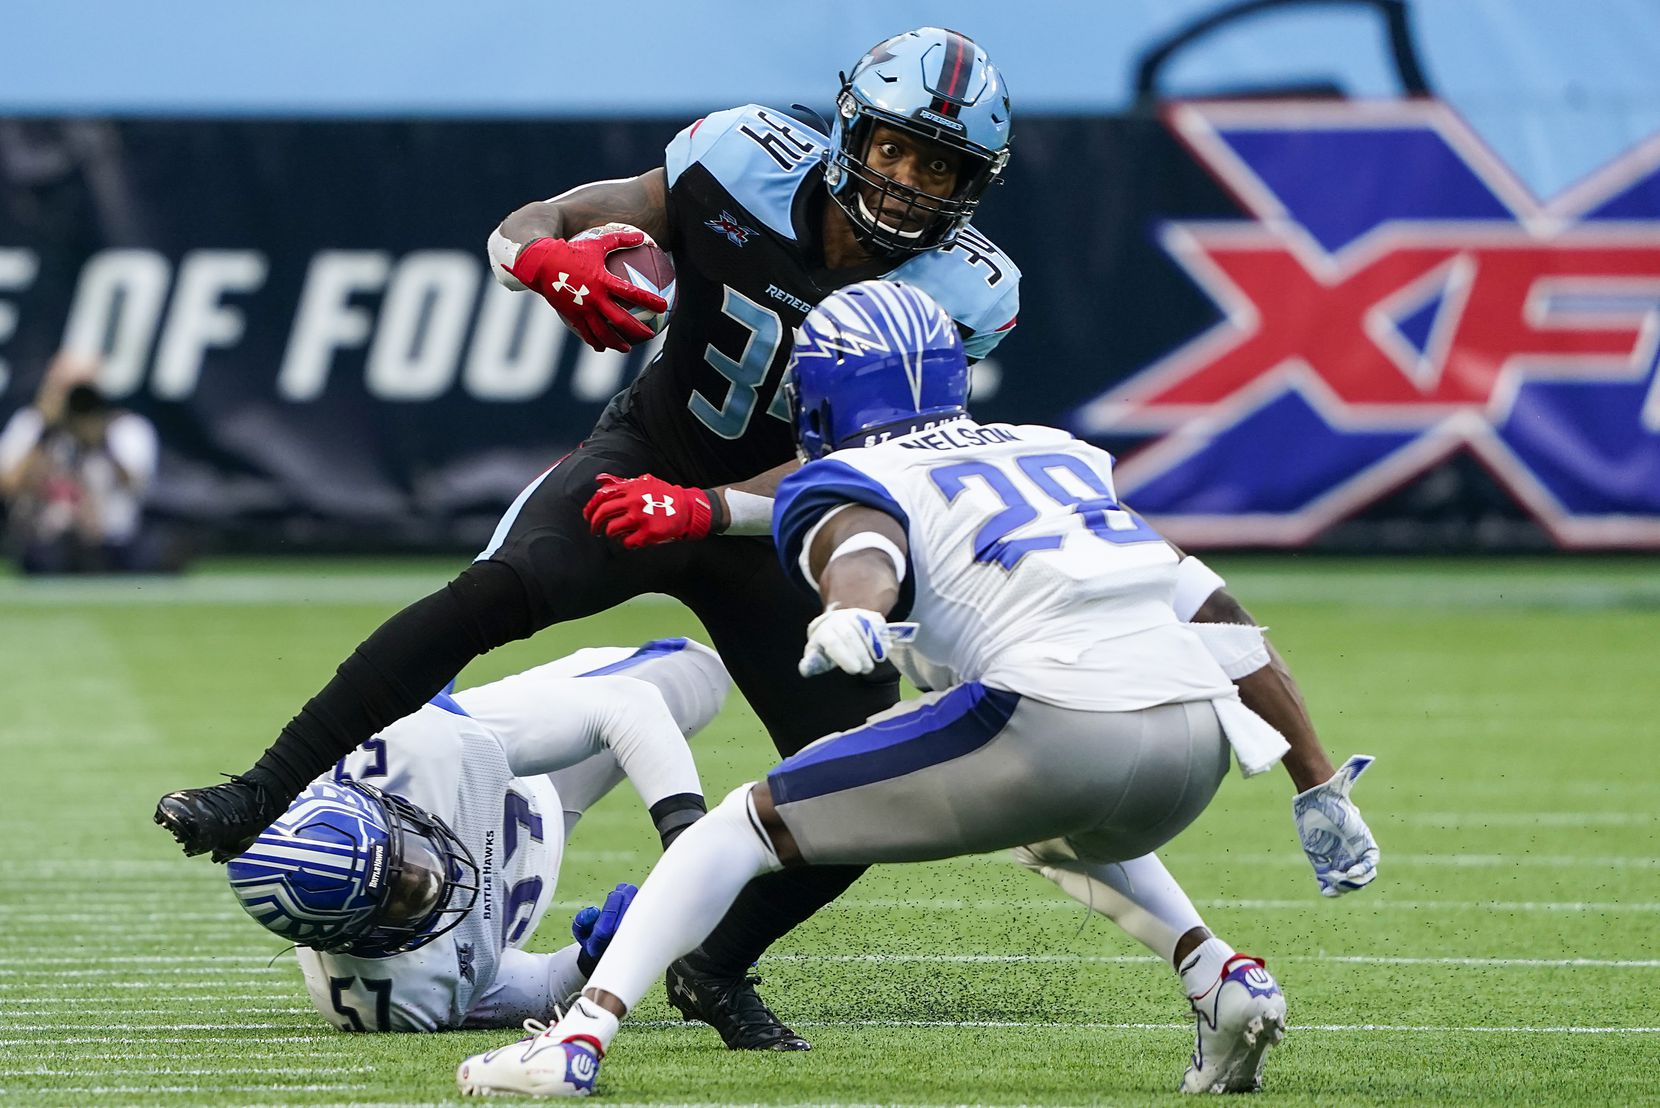 Dallas Renegades running back Cameron Artis-Payne (34) is brought down by St. Louis Battlehawks linebacker Terence Garvin (57) and cornerback Robert Nelson (28) during the first half of an XFL football game at Globe Life Park on Sunday, Feb. 9, 2020, in Arlington.